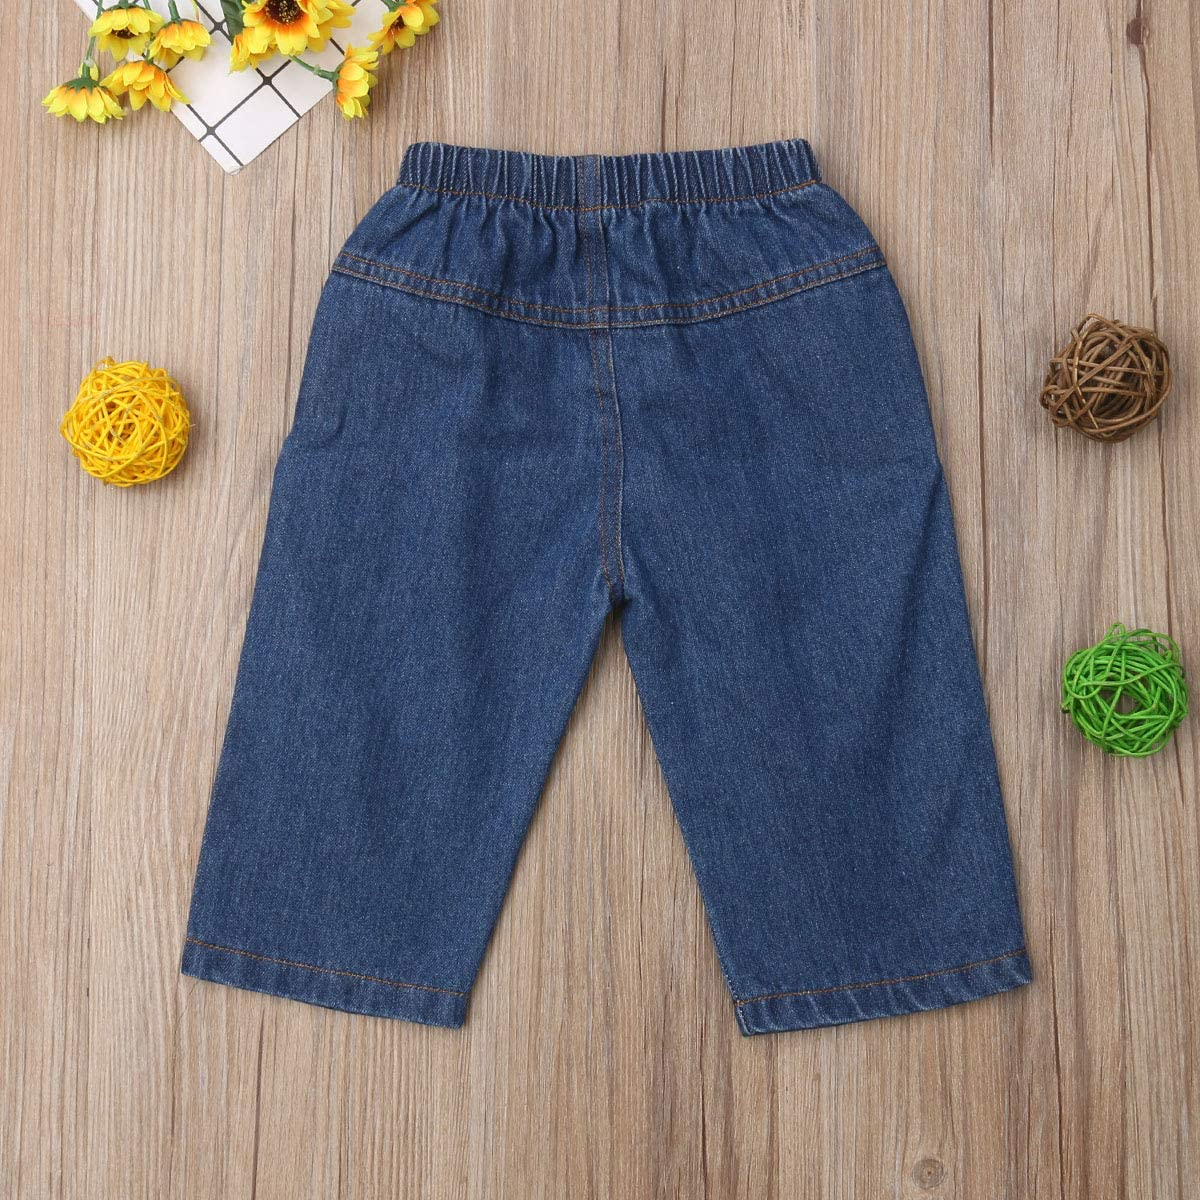 Muasaaluxi Infant Baby Kid Girls Boys Denim Ripped Jeans Long Pants Eyes Trousers Casual Clothes